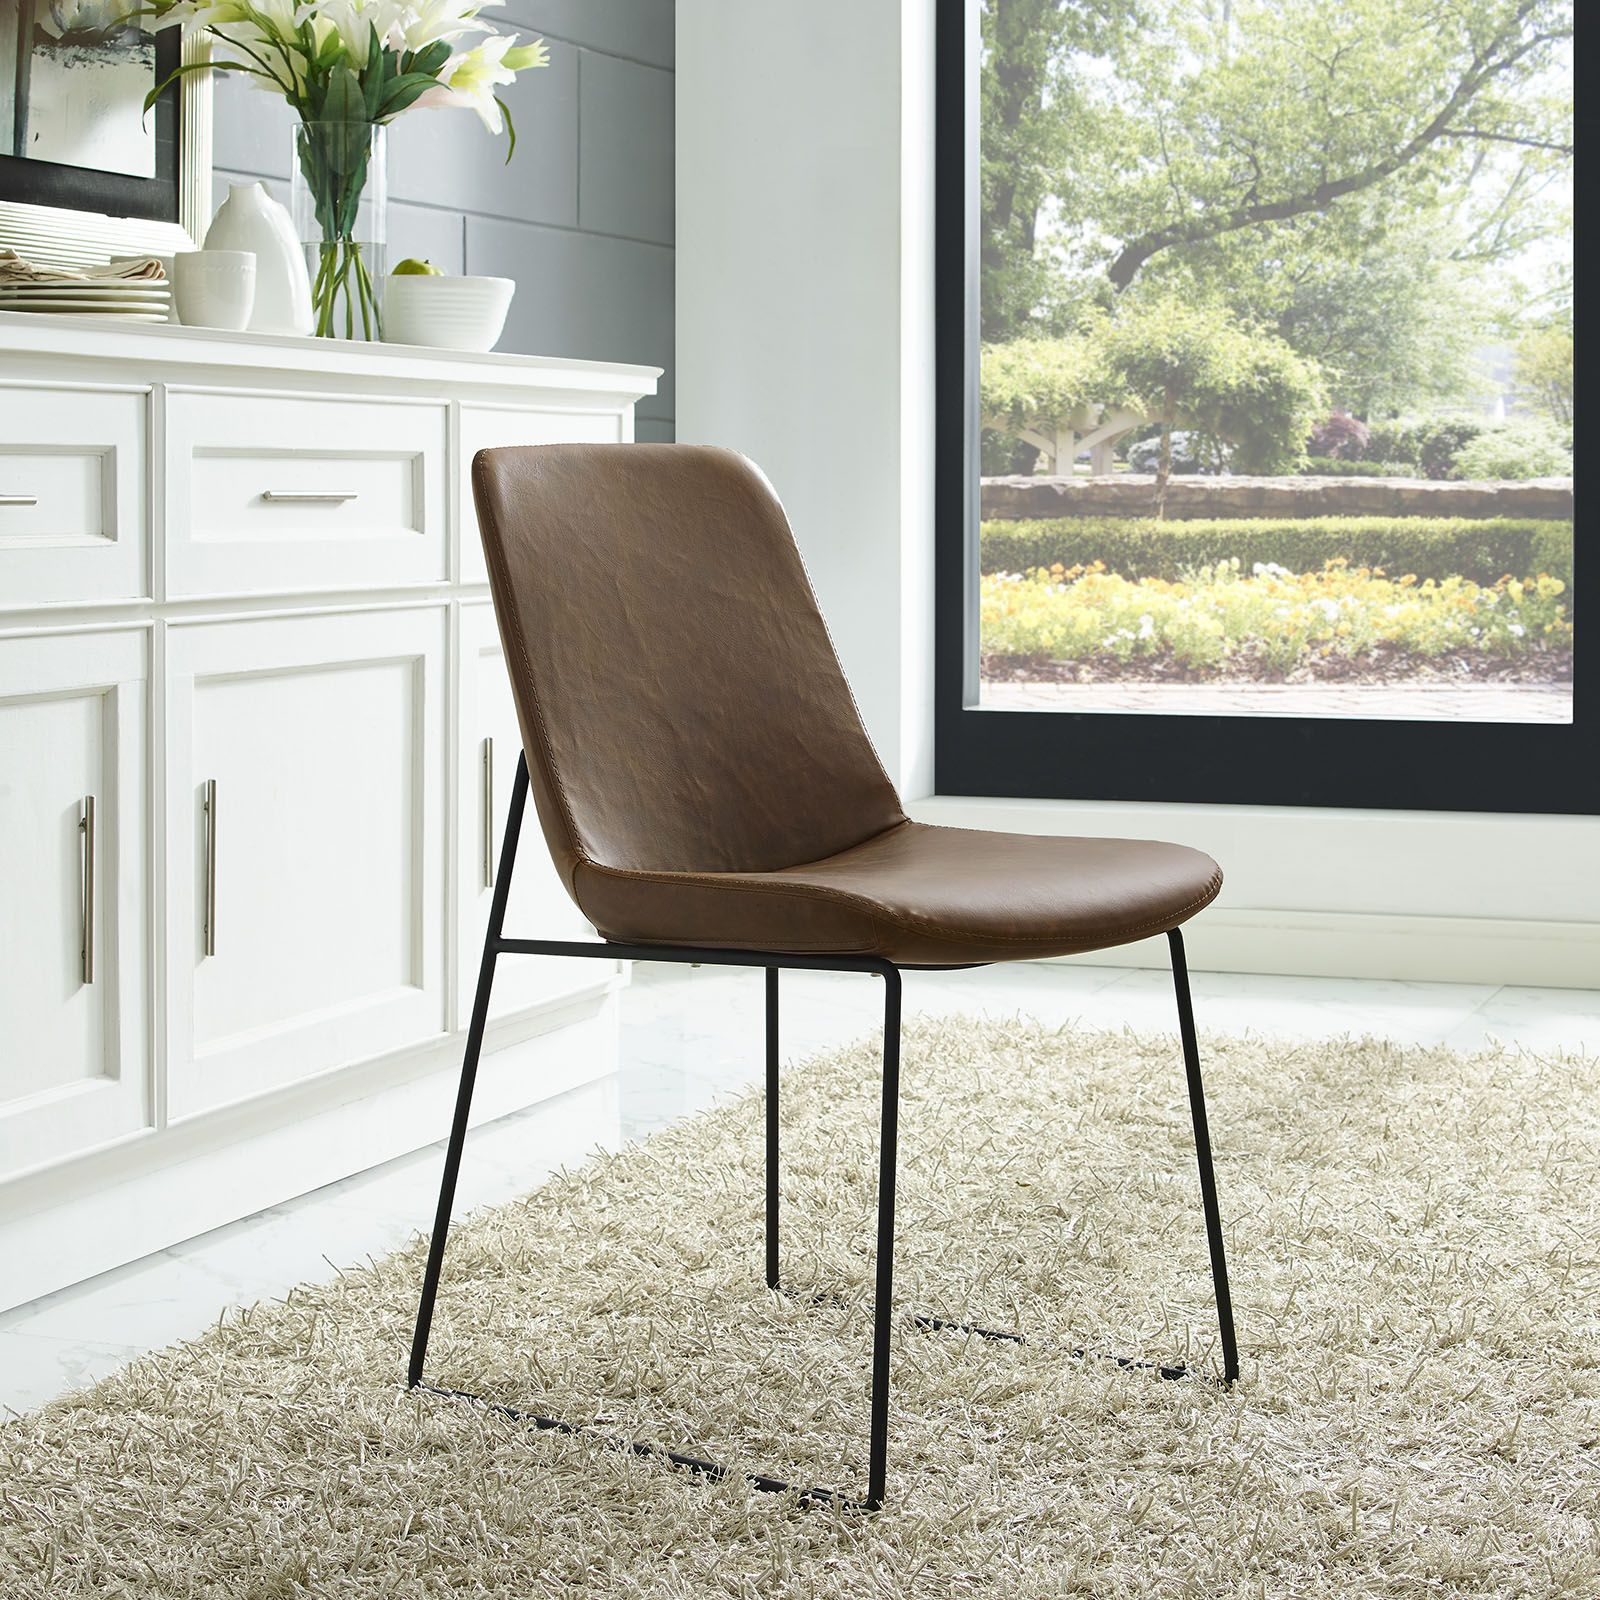 Invite dining chair modern furnituredining room